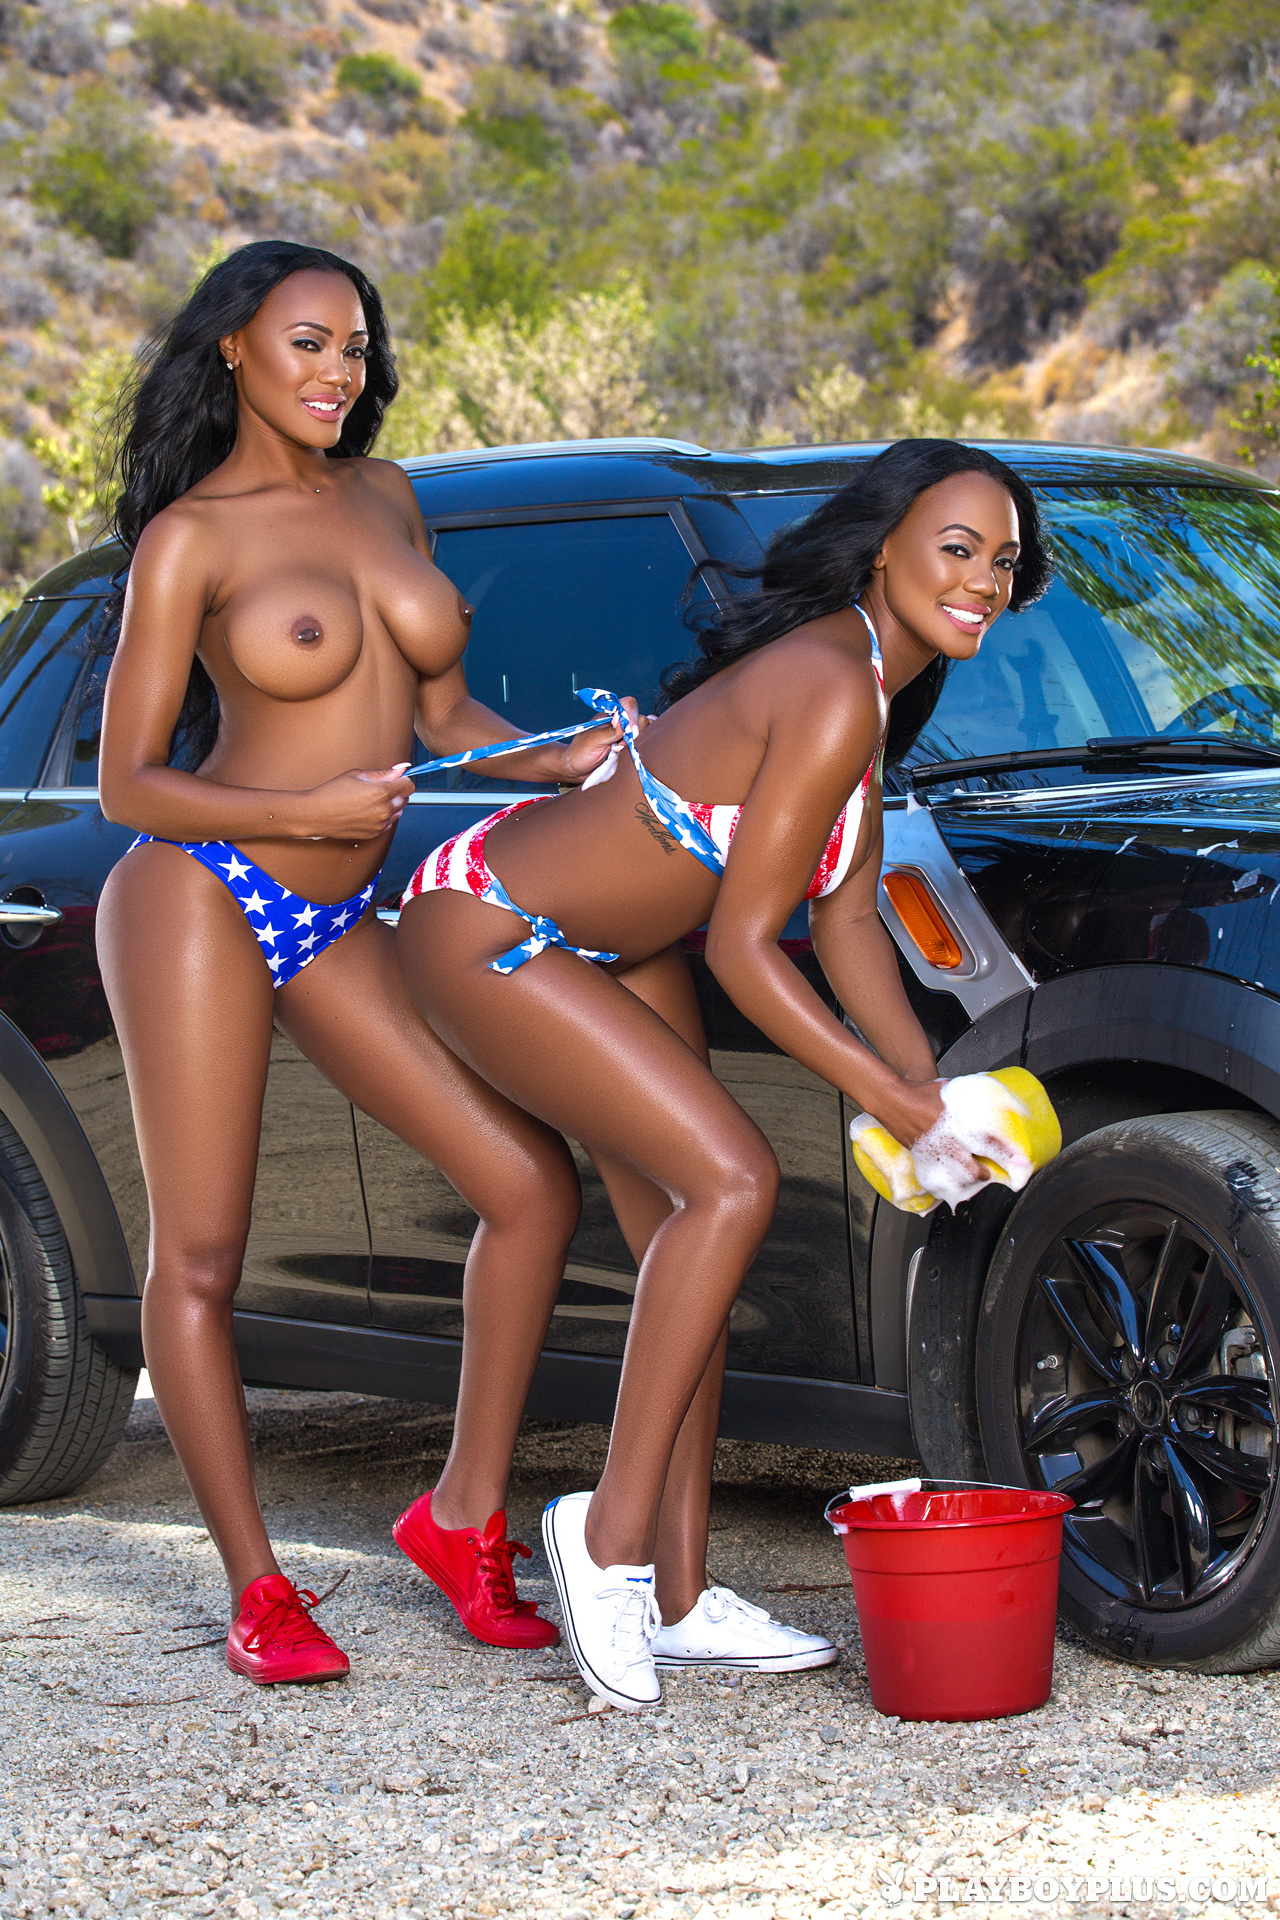 Brittany & Brandi Kelly in Wet Hot American Girls ...